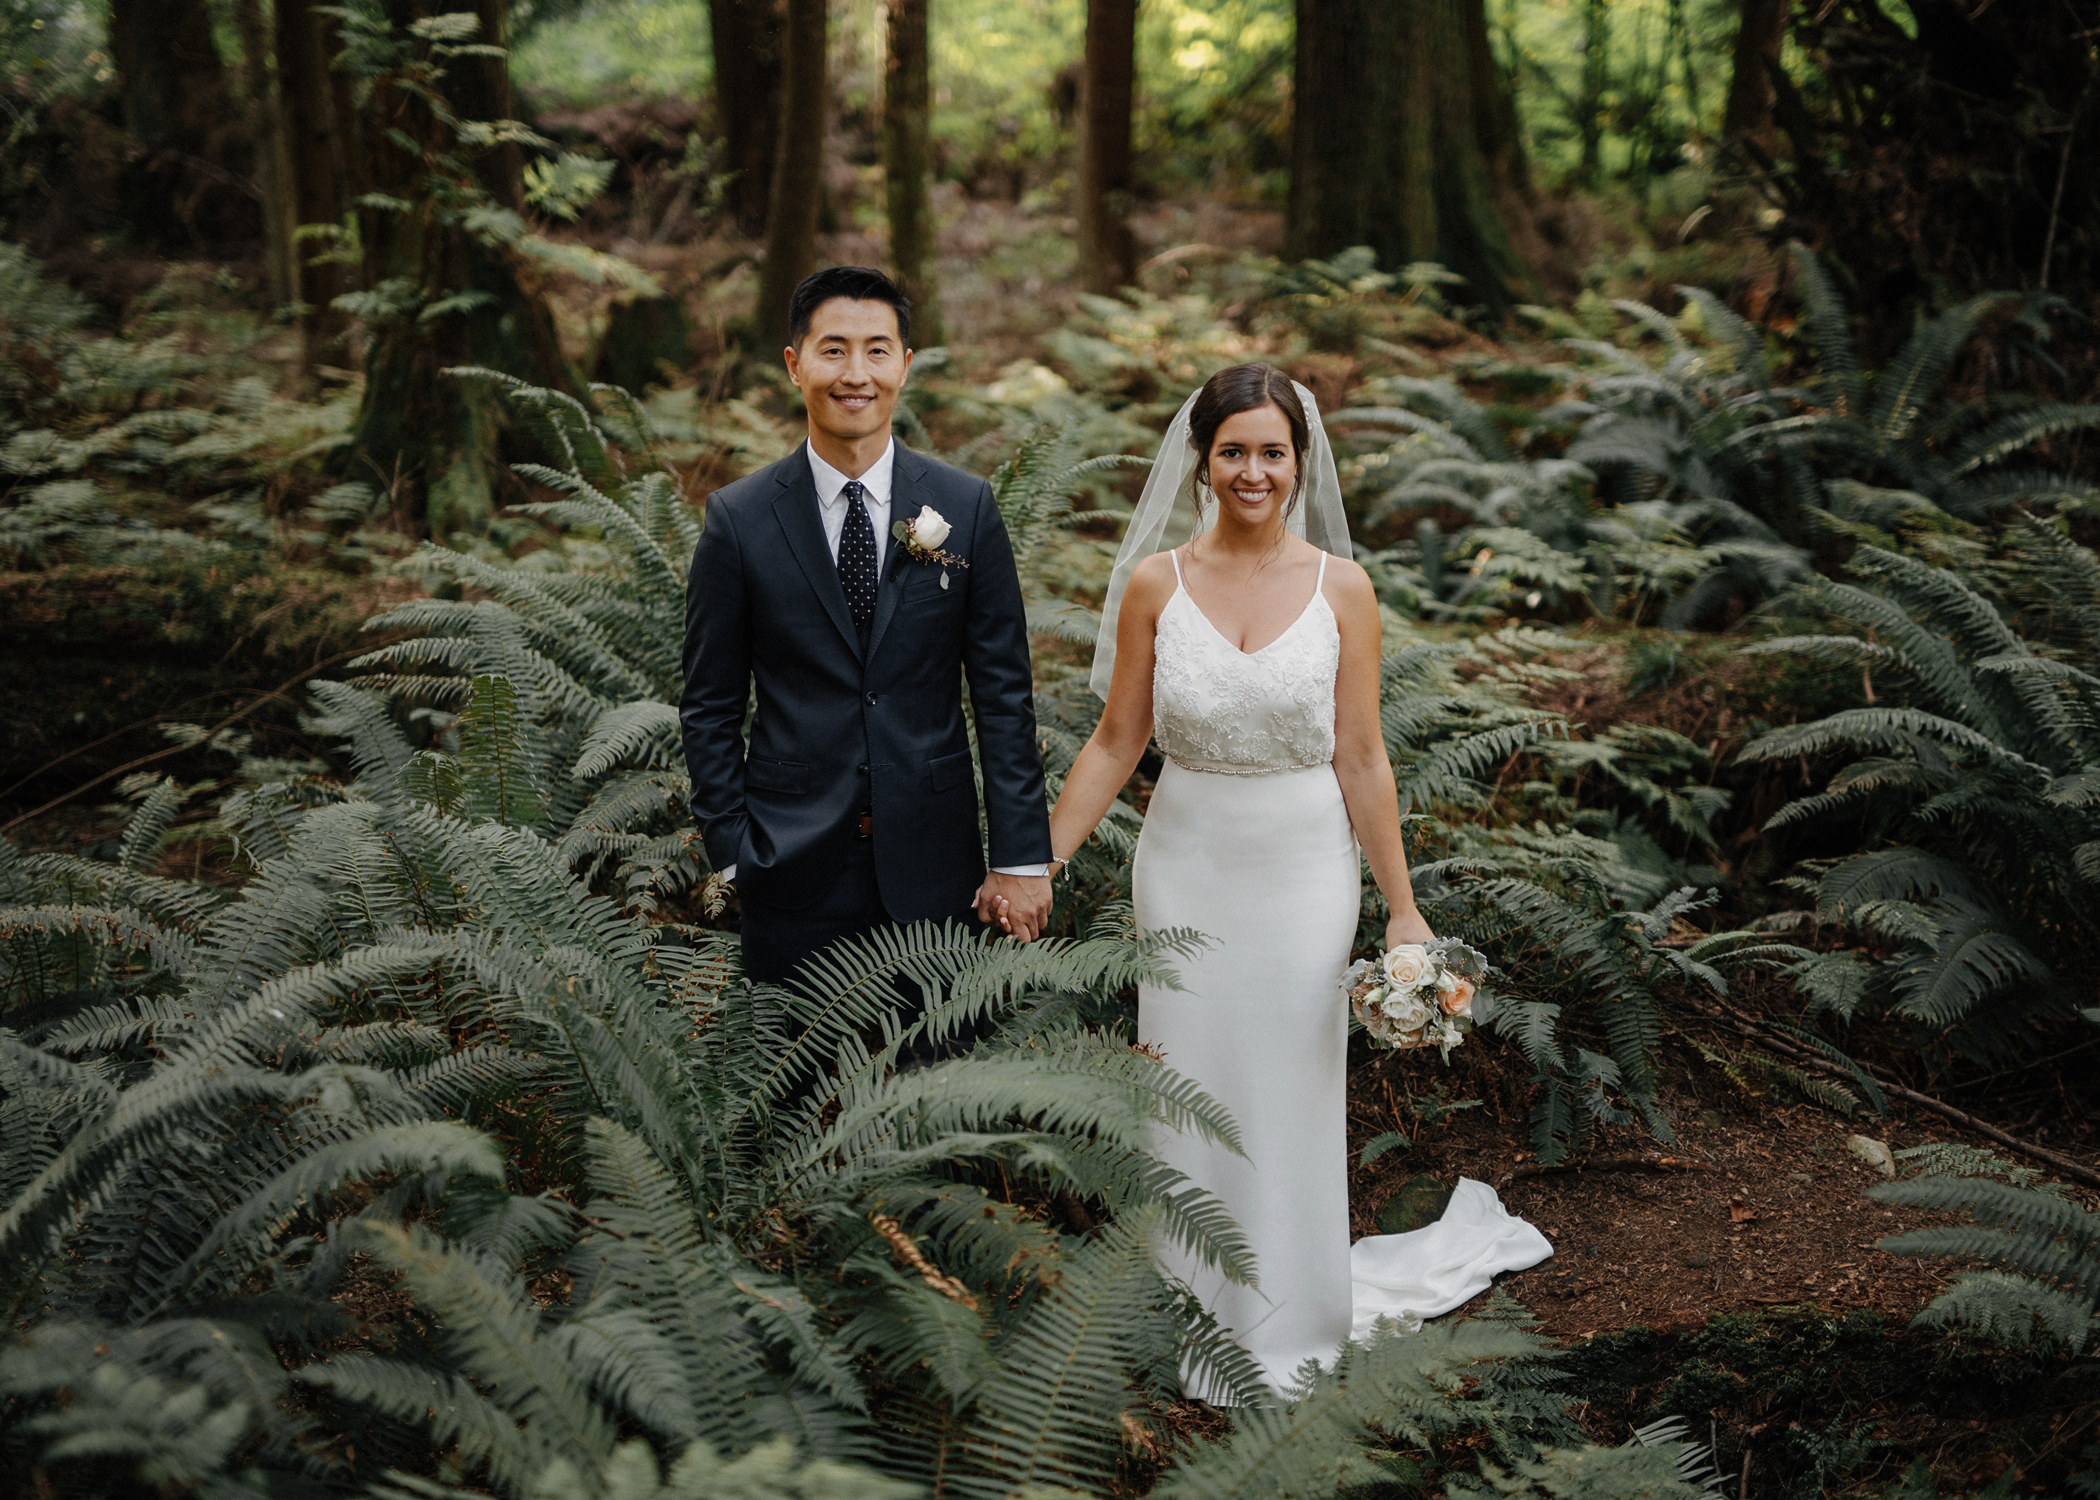 035-kaoverii-silva-az-wedding-vancouver-photography.png